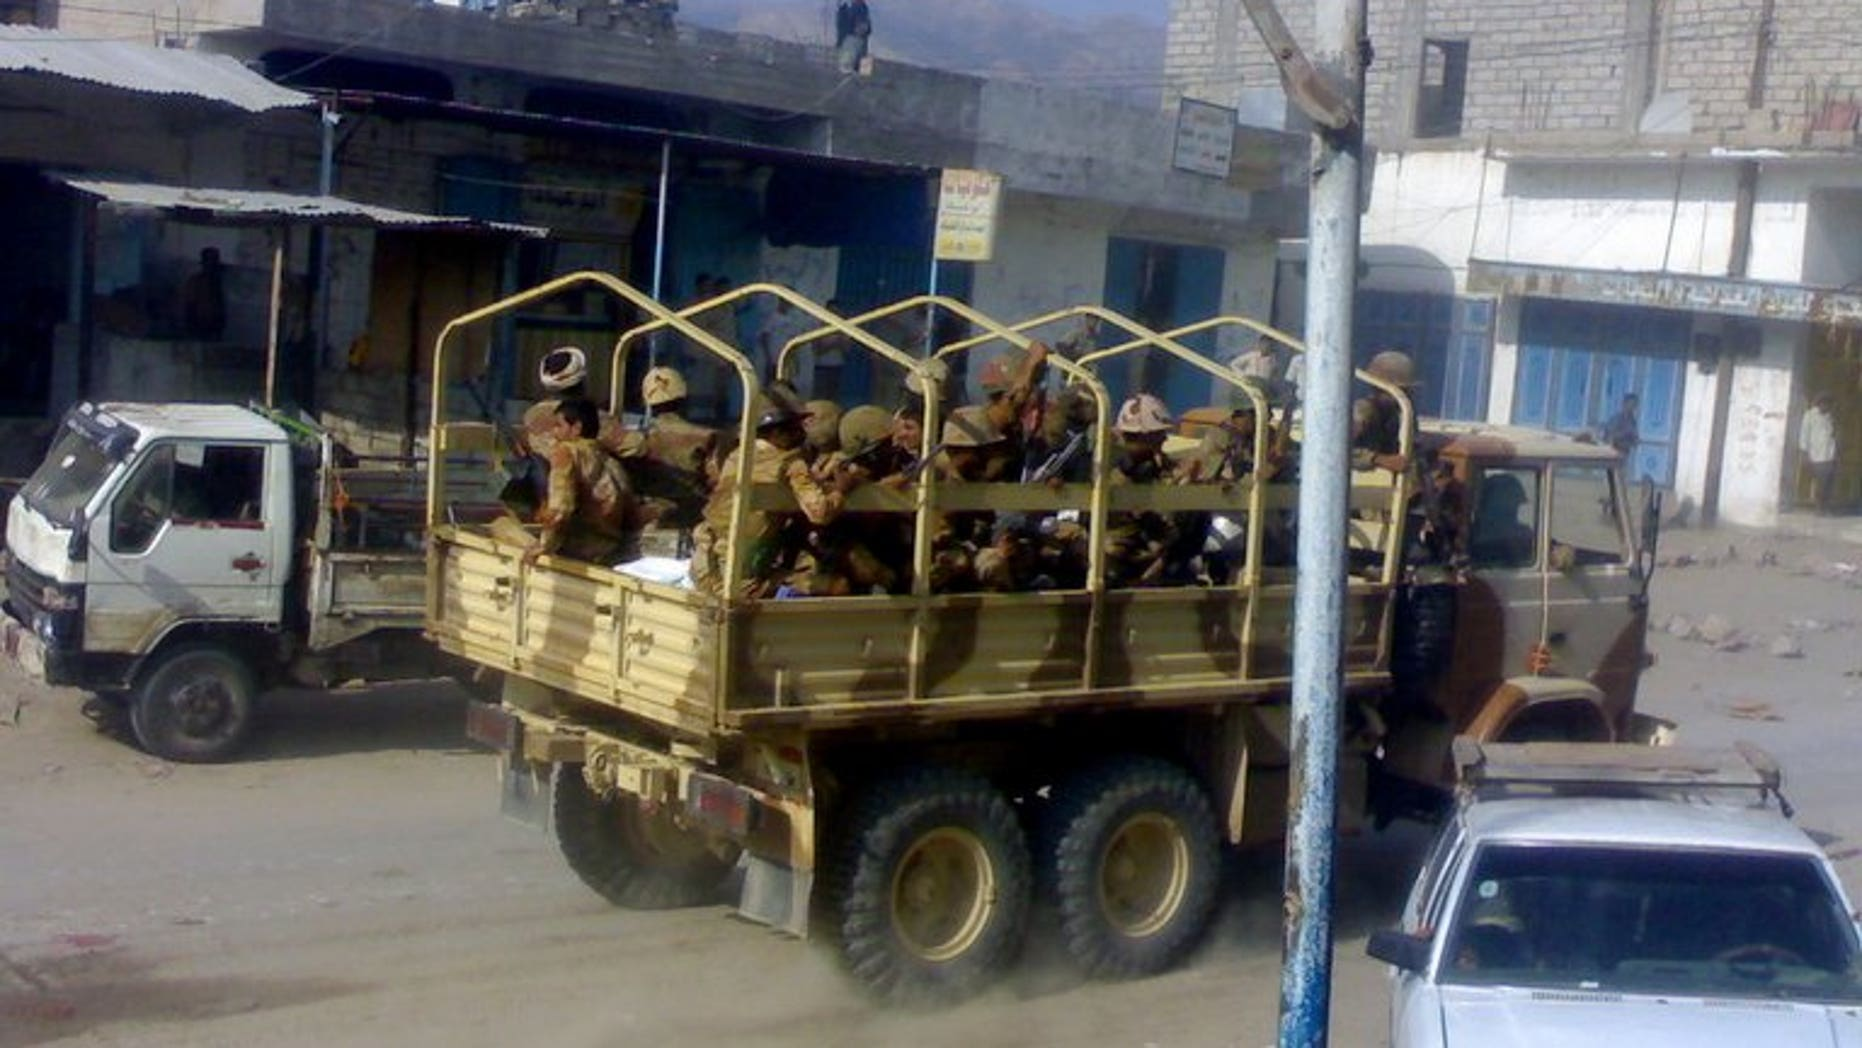 Yemeni troops patrol the town of Mudia in Abyan province, on October 17, 2010. Al-Qaeda suspects have shot dead a member of a pro-army militia that had backed a military offensive against the network in 2012, a police official tells AFP.